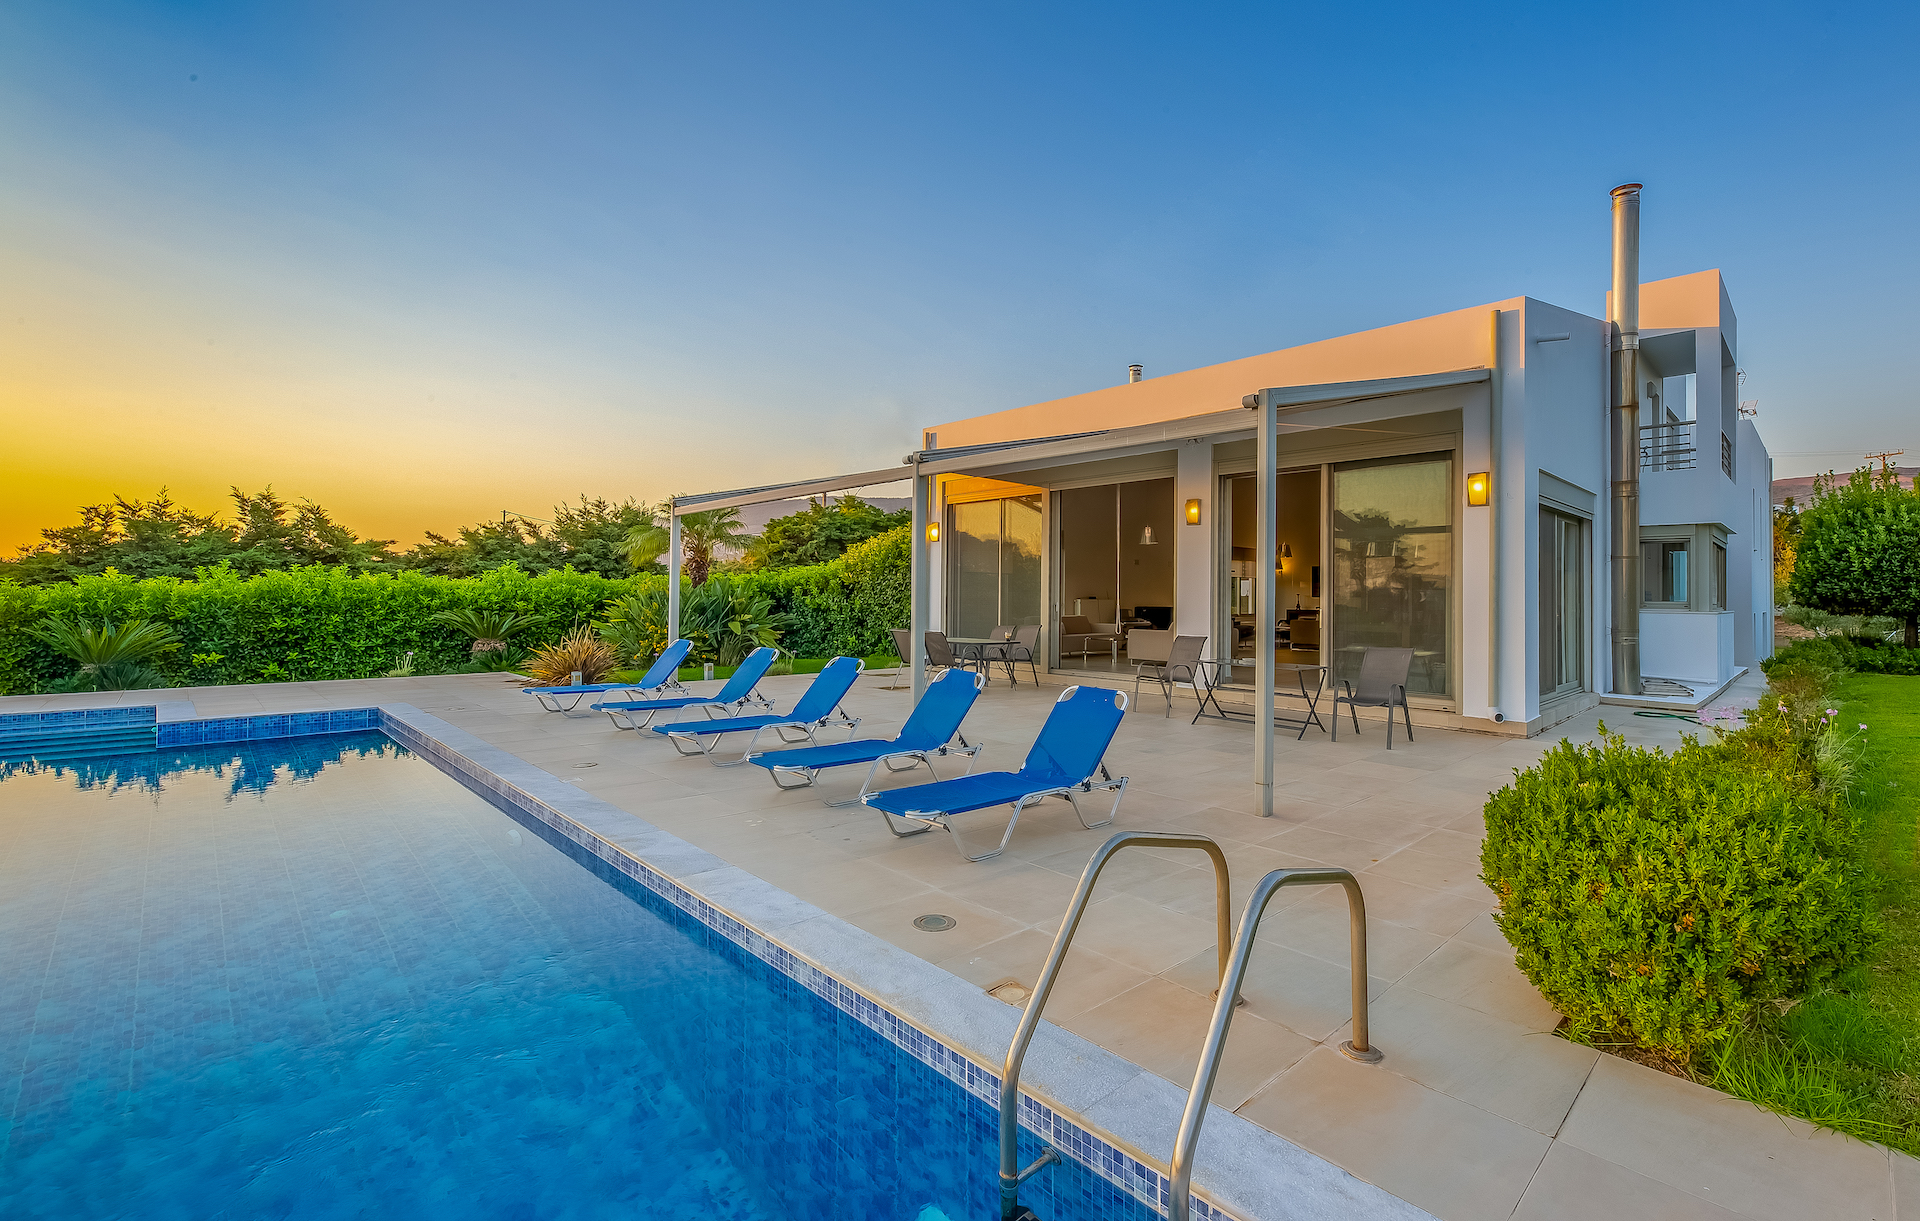 Kos, Dream Villa Daphne, Pool and Relaxing Vibes